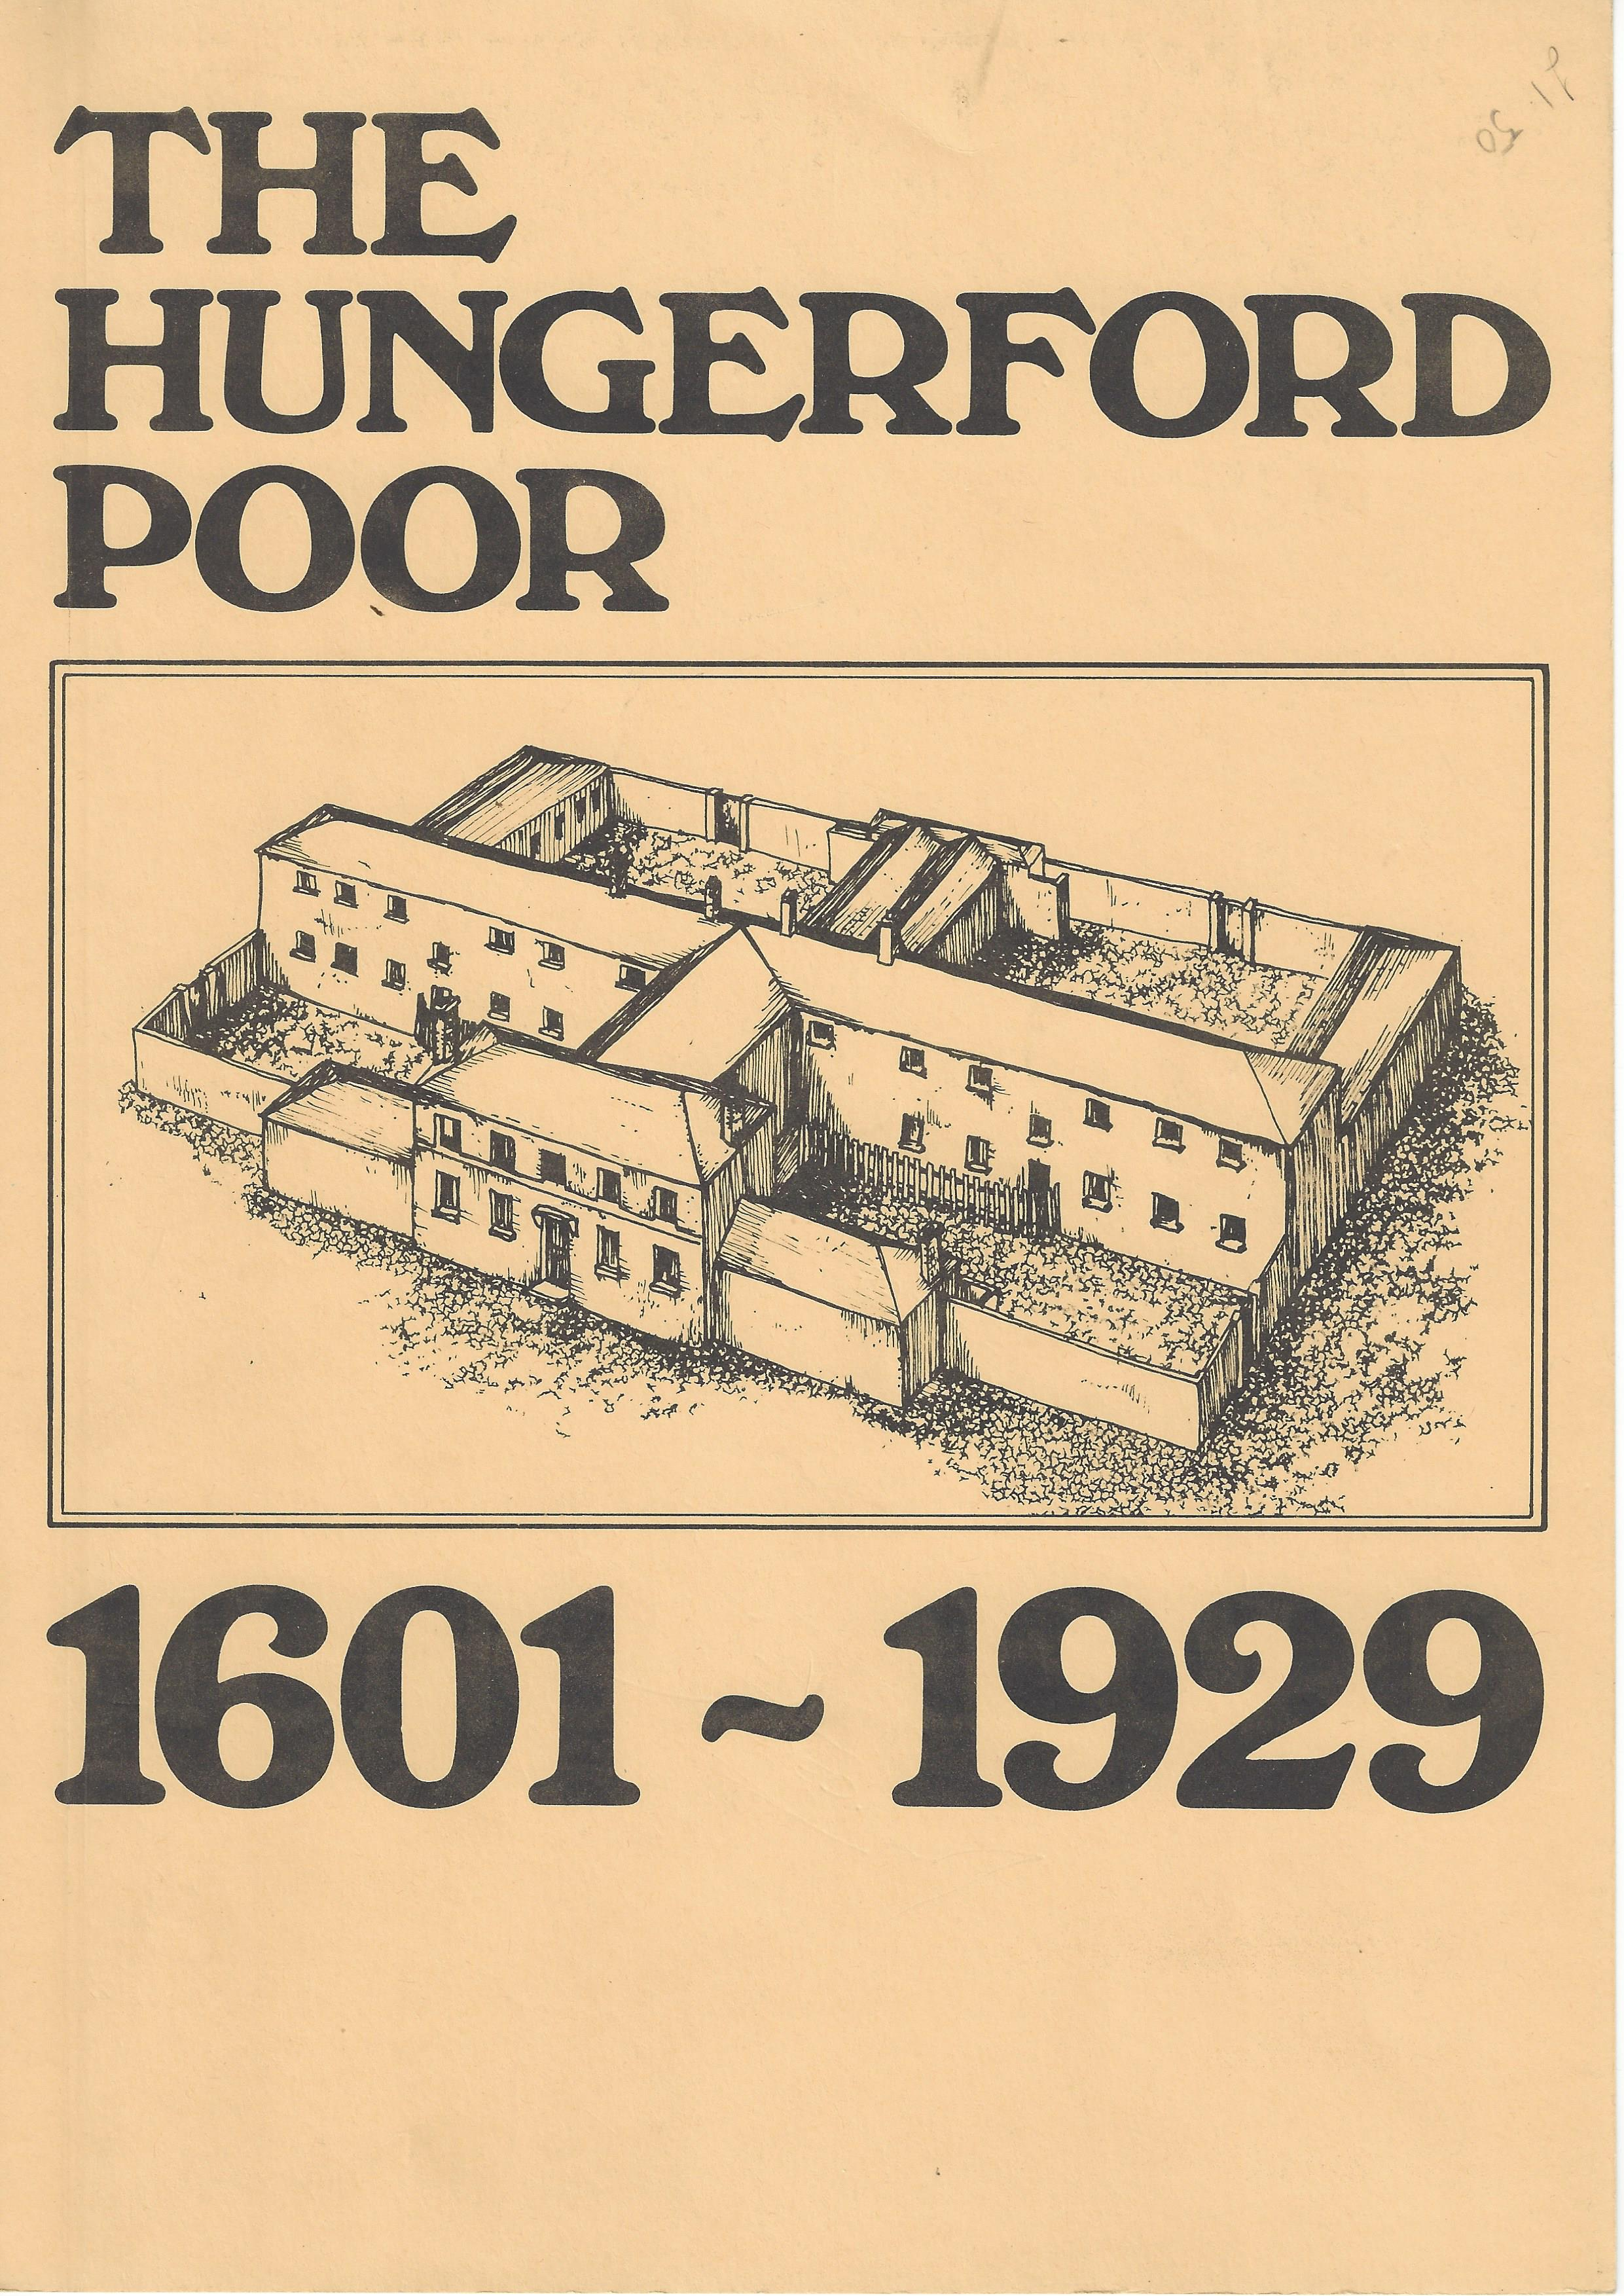 The Hungerford poor cover